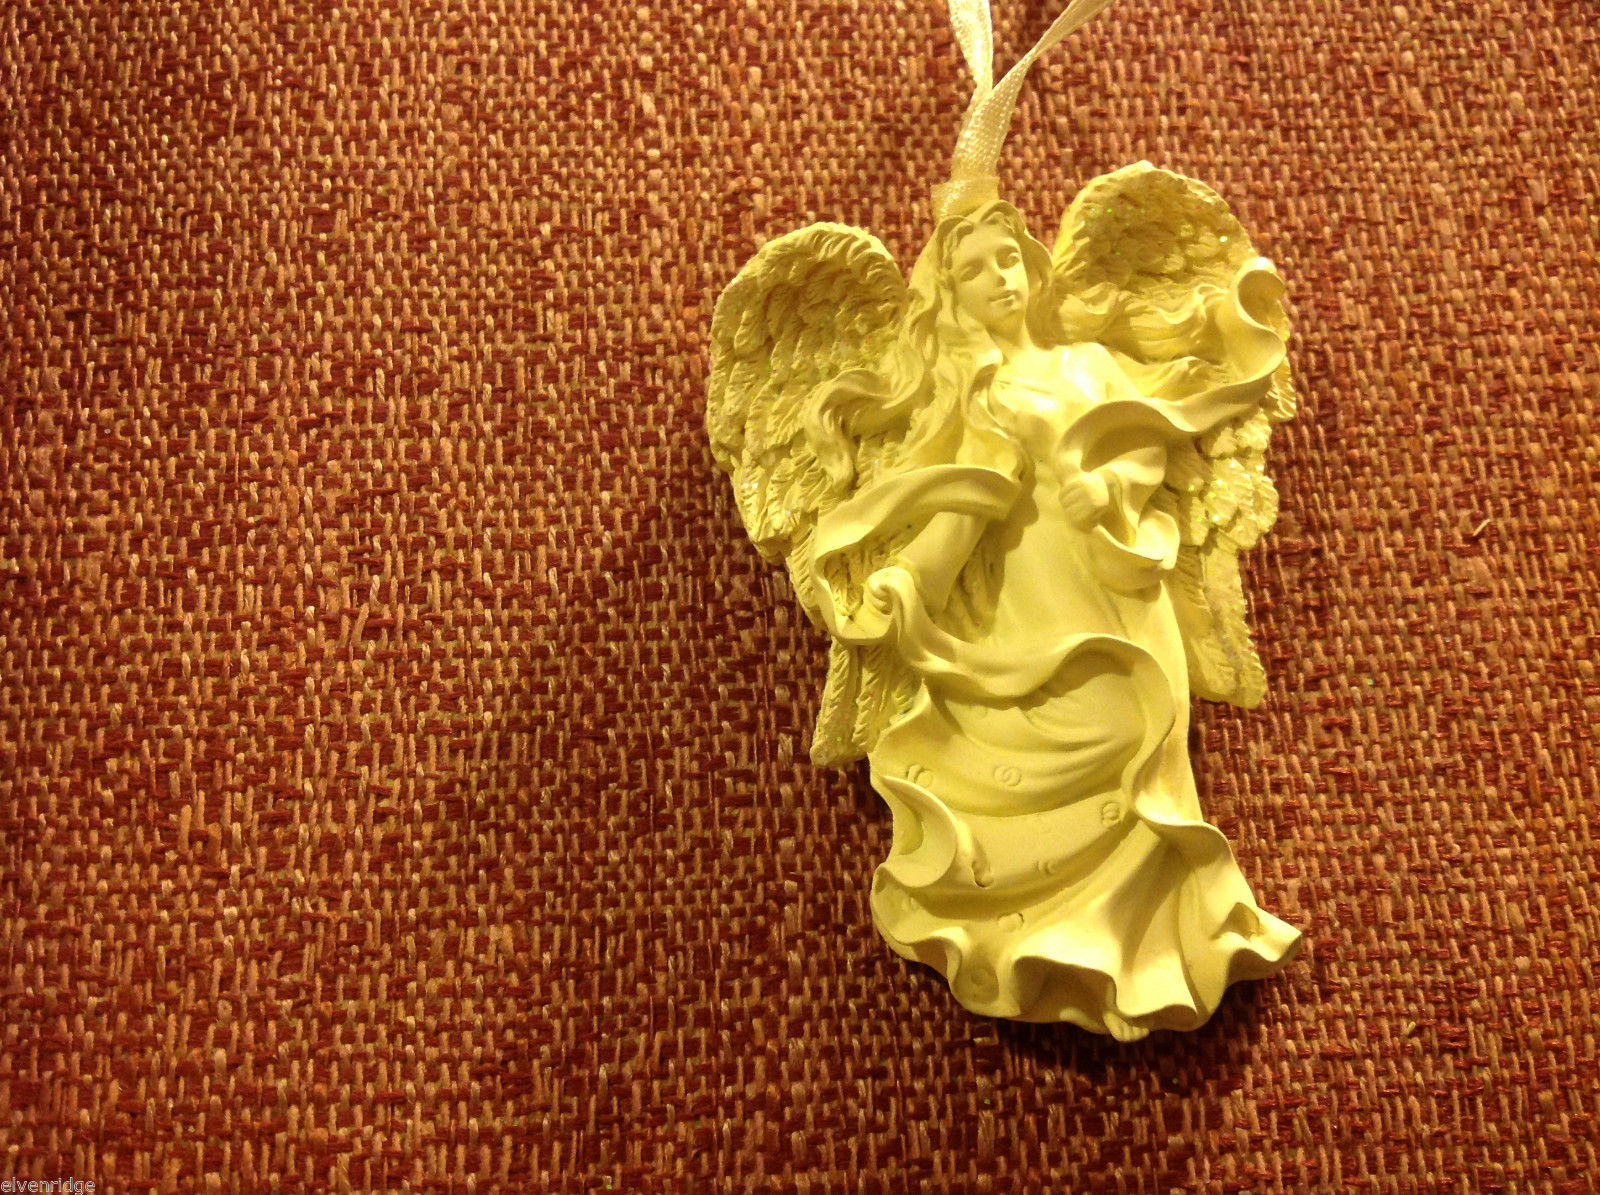 White angel ornament named HEALING in organza gift bag new with tags